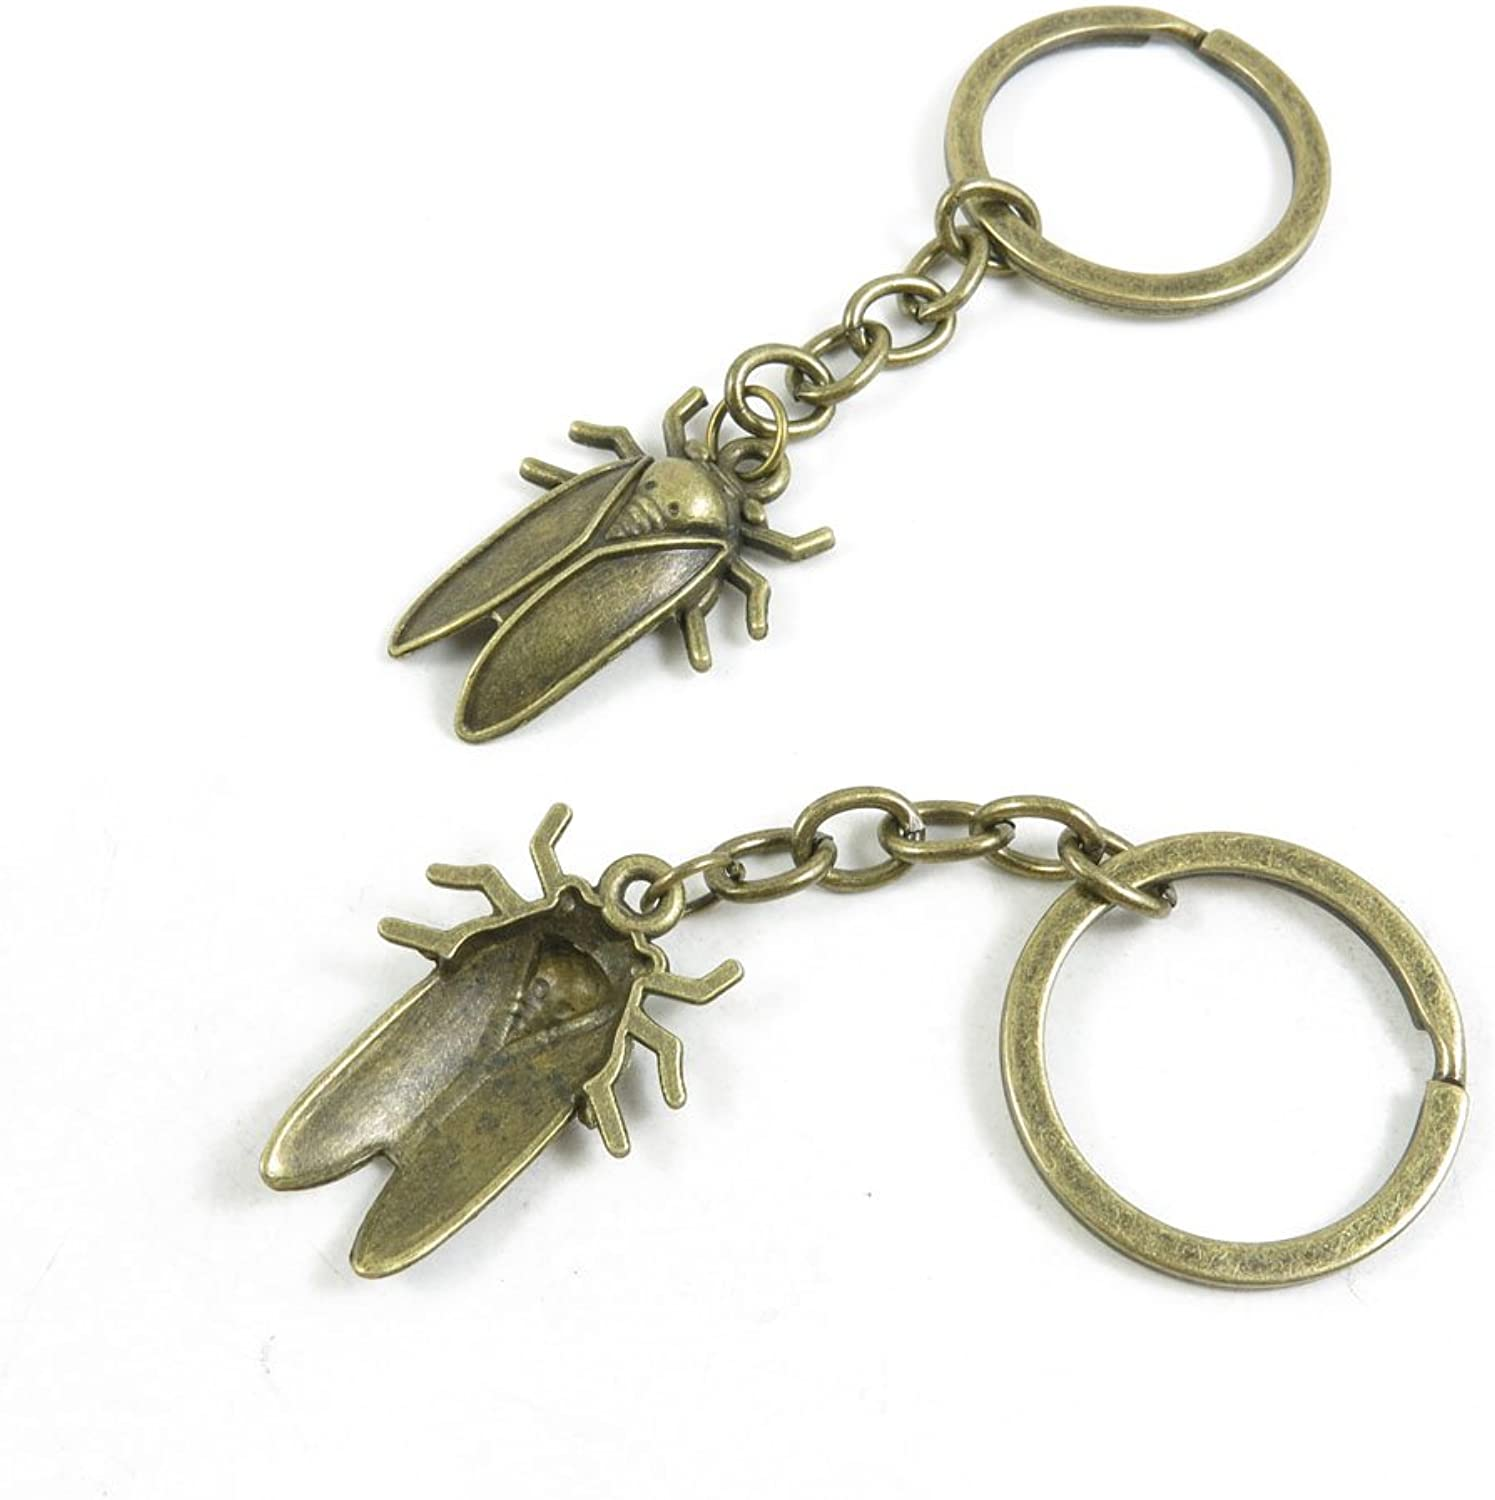 210 Pieces Fashion Jewelry Keyring Keychain Door Car Key Tag Ring Chain Supplier Supply Wholesale Bulk Lots O6RE1 Cockroach Cicada Cicadidae